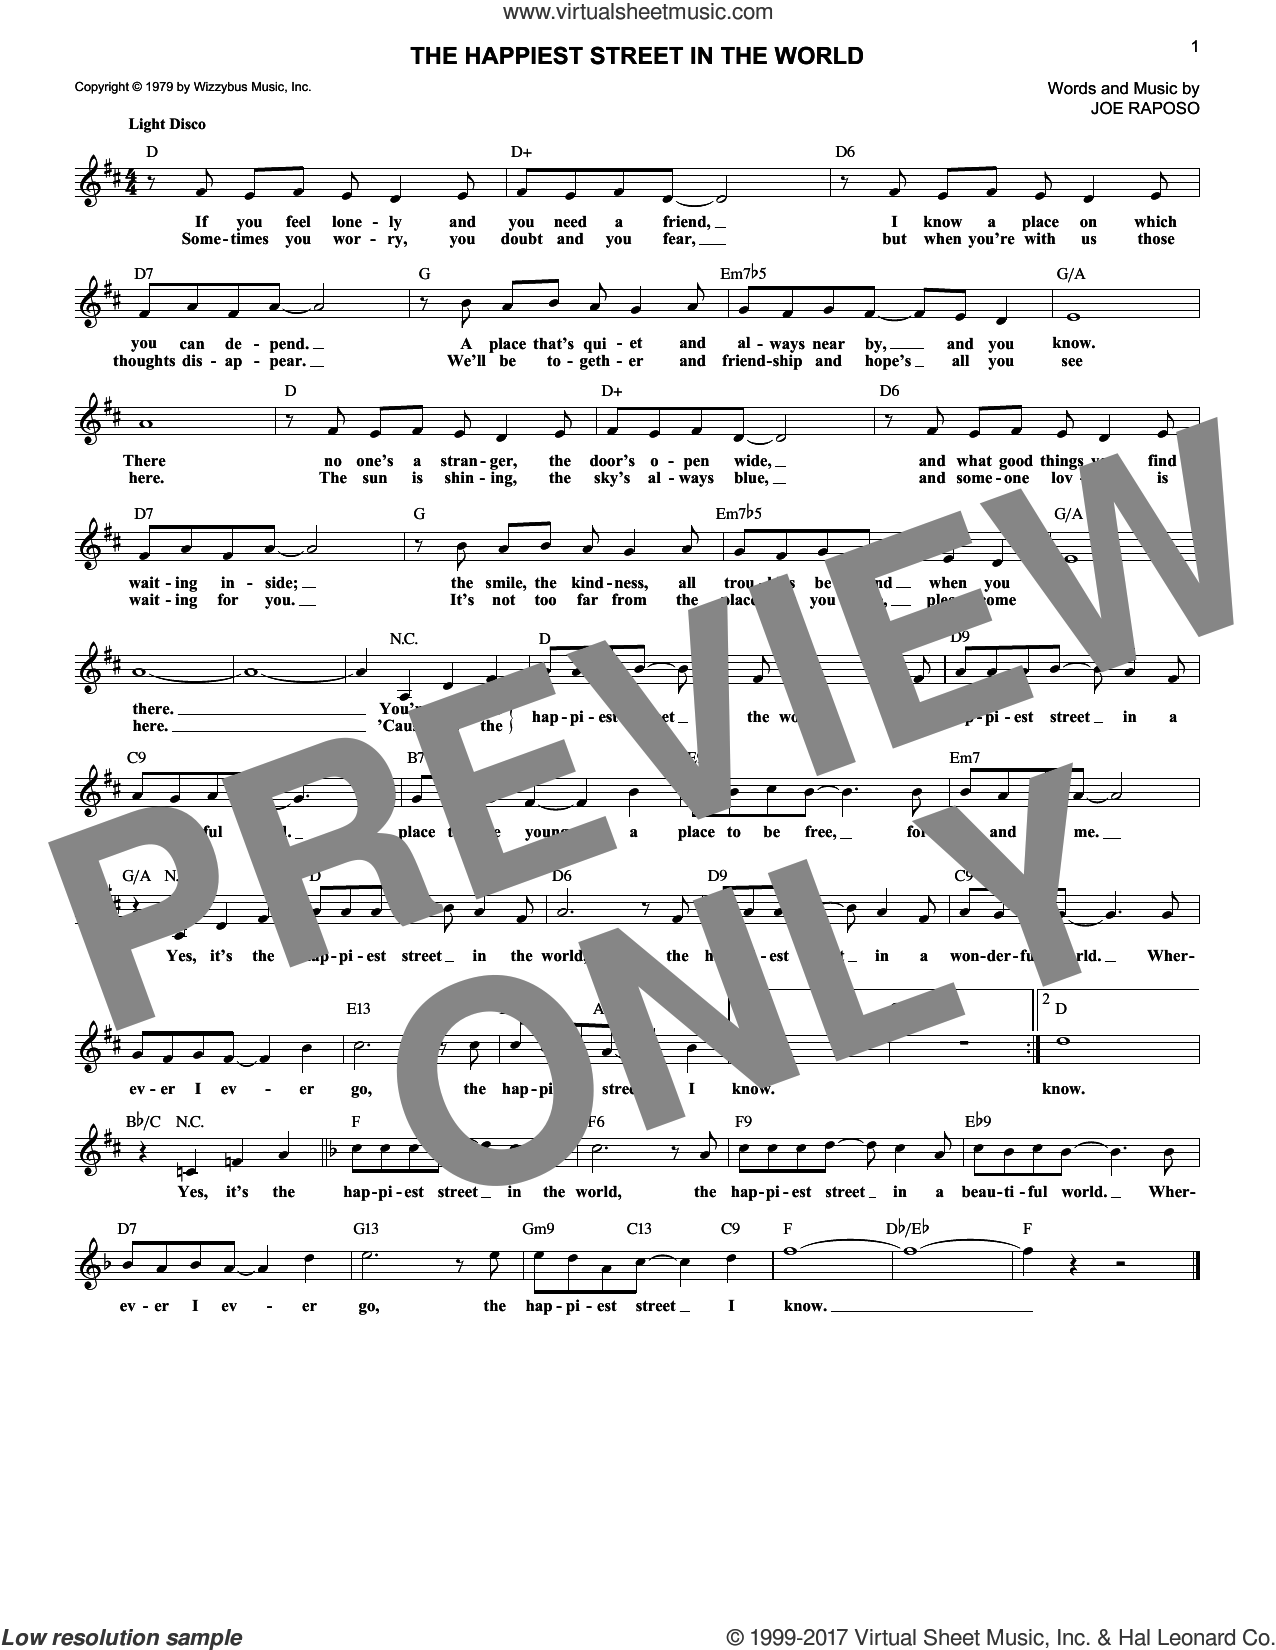 The Happiest Street In The World sheet music for voice and other instruments (fake book) by Joe Raposo, intermediate skill level